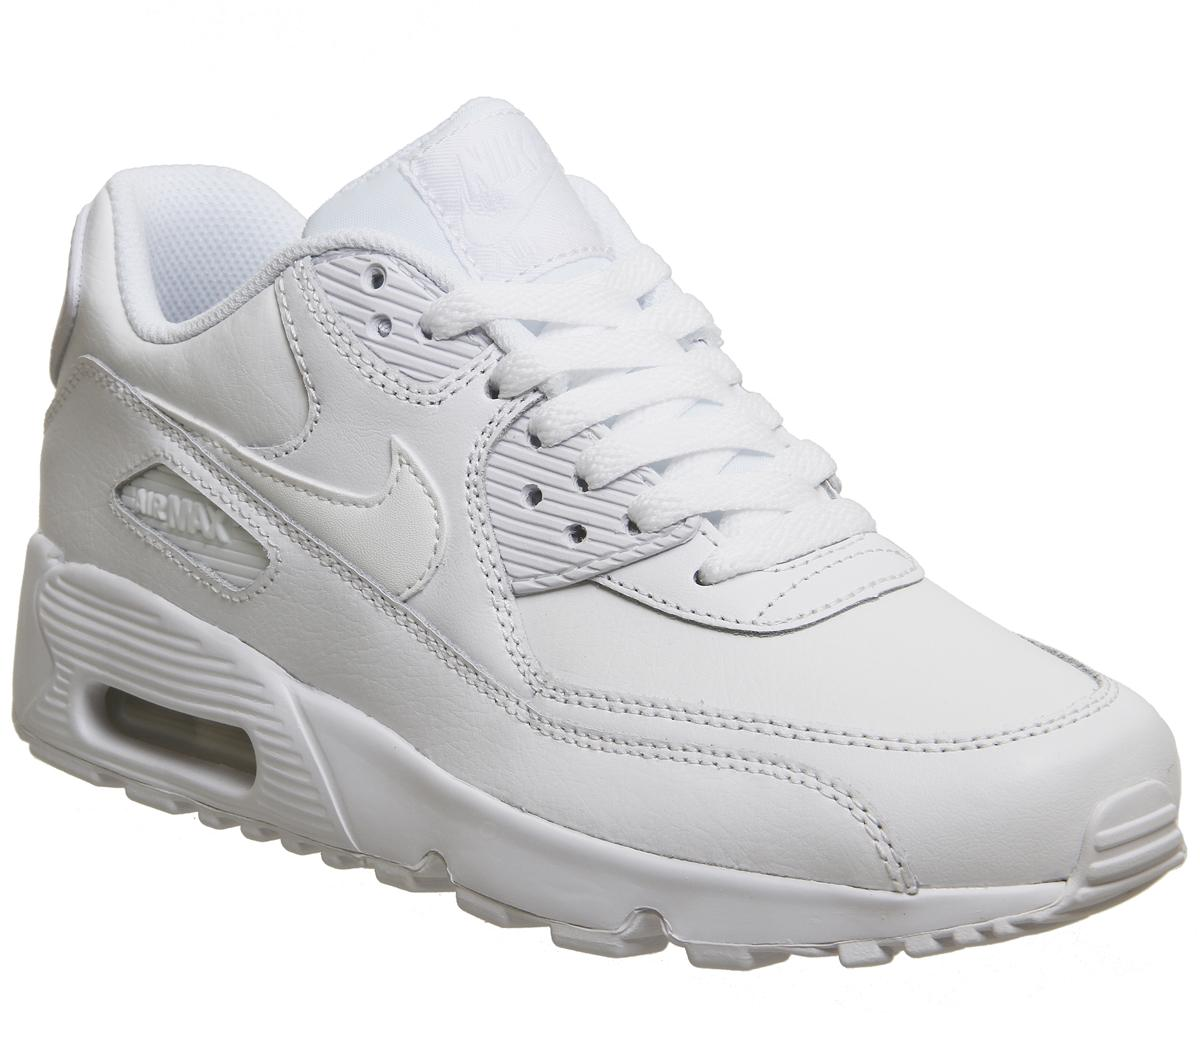 Nike Air Max 90 Leather Mesh Gs White Black Mens Trainers Sale UK